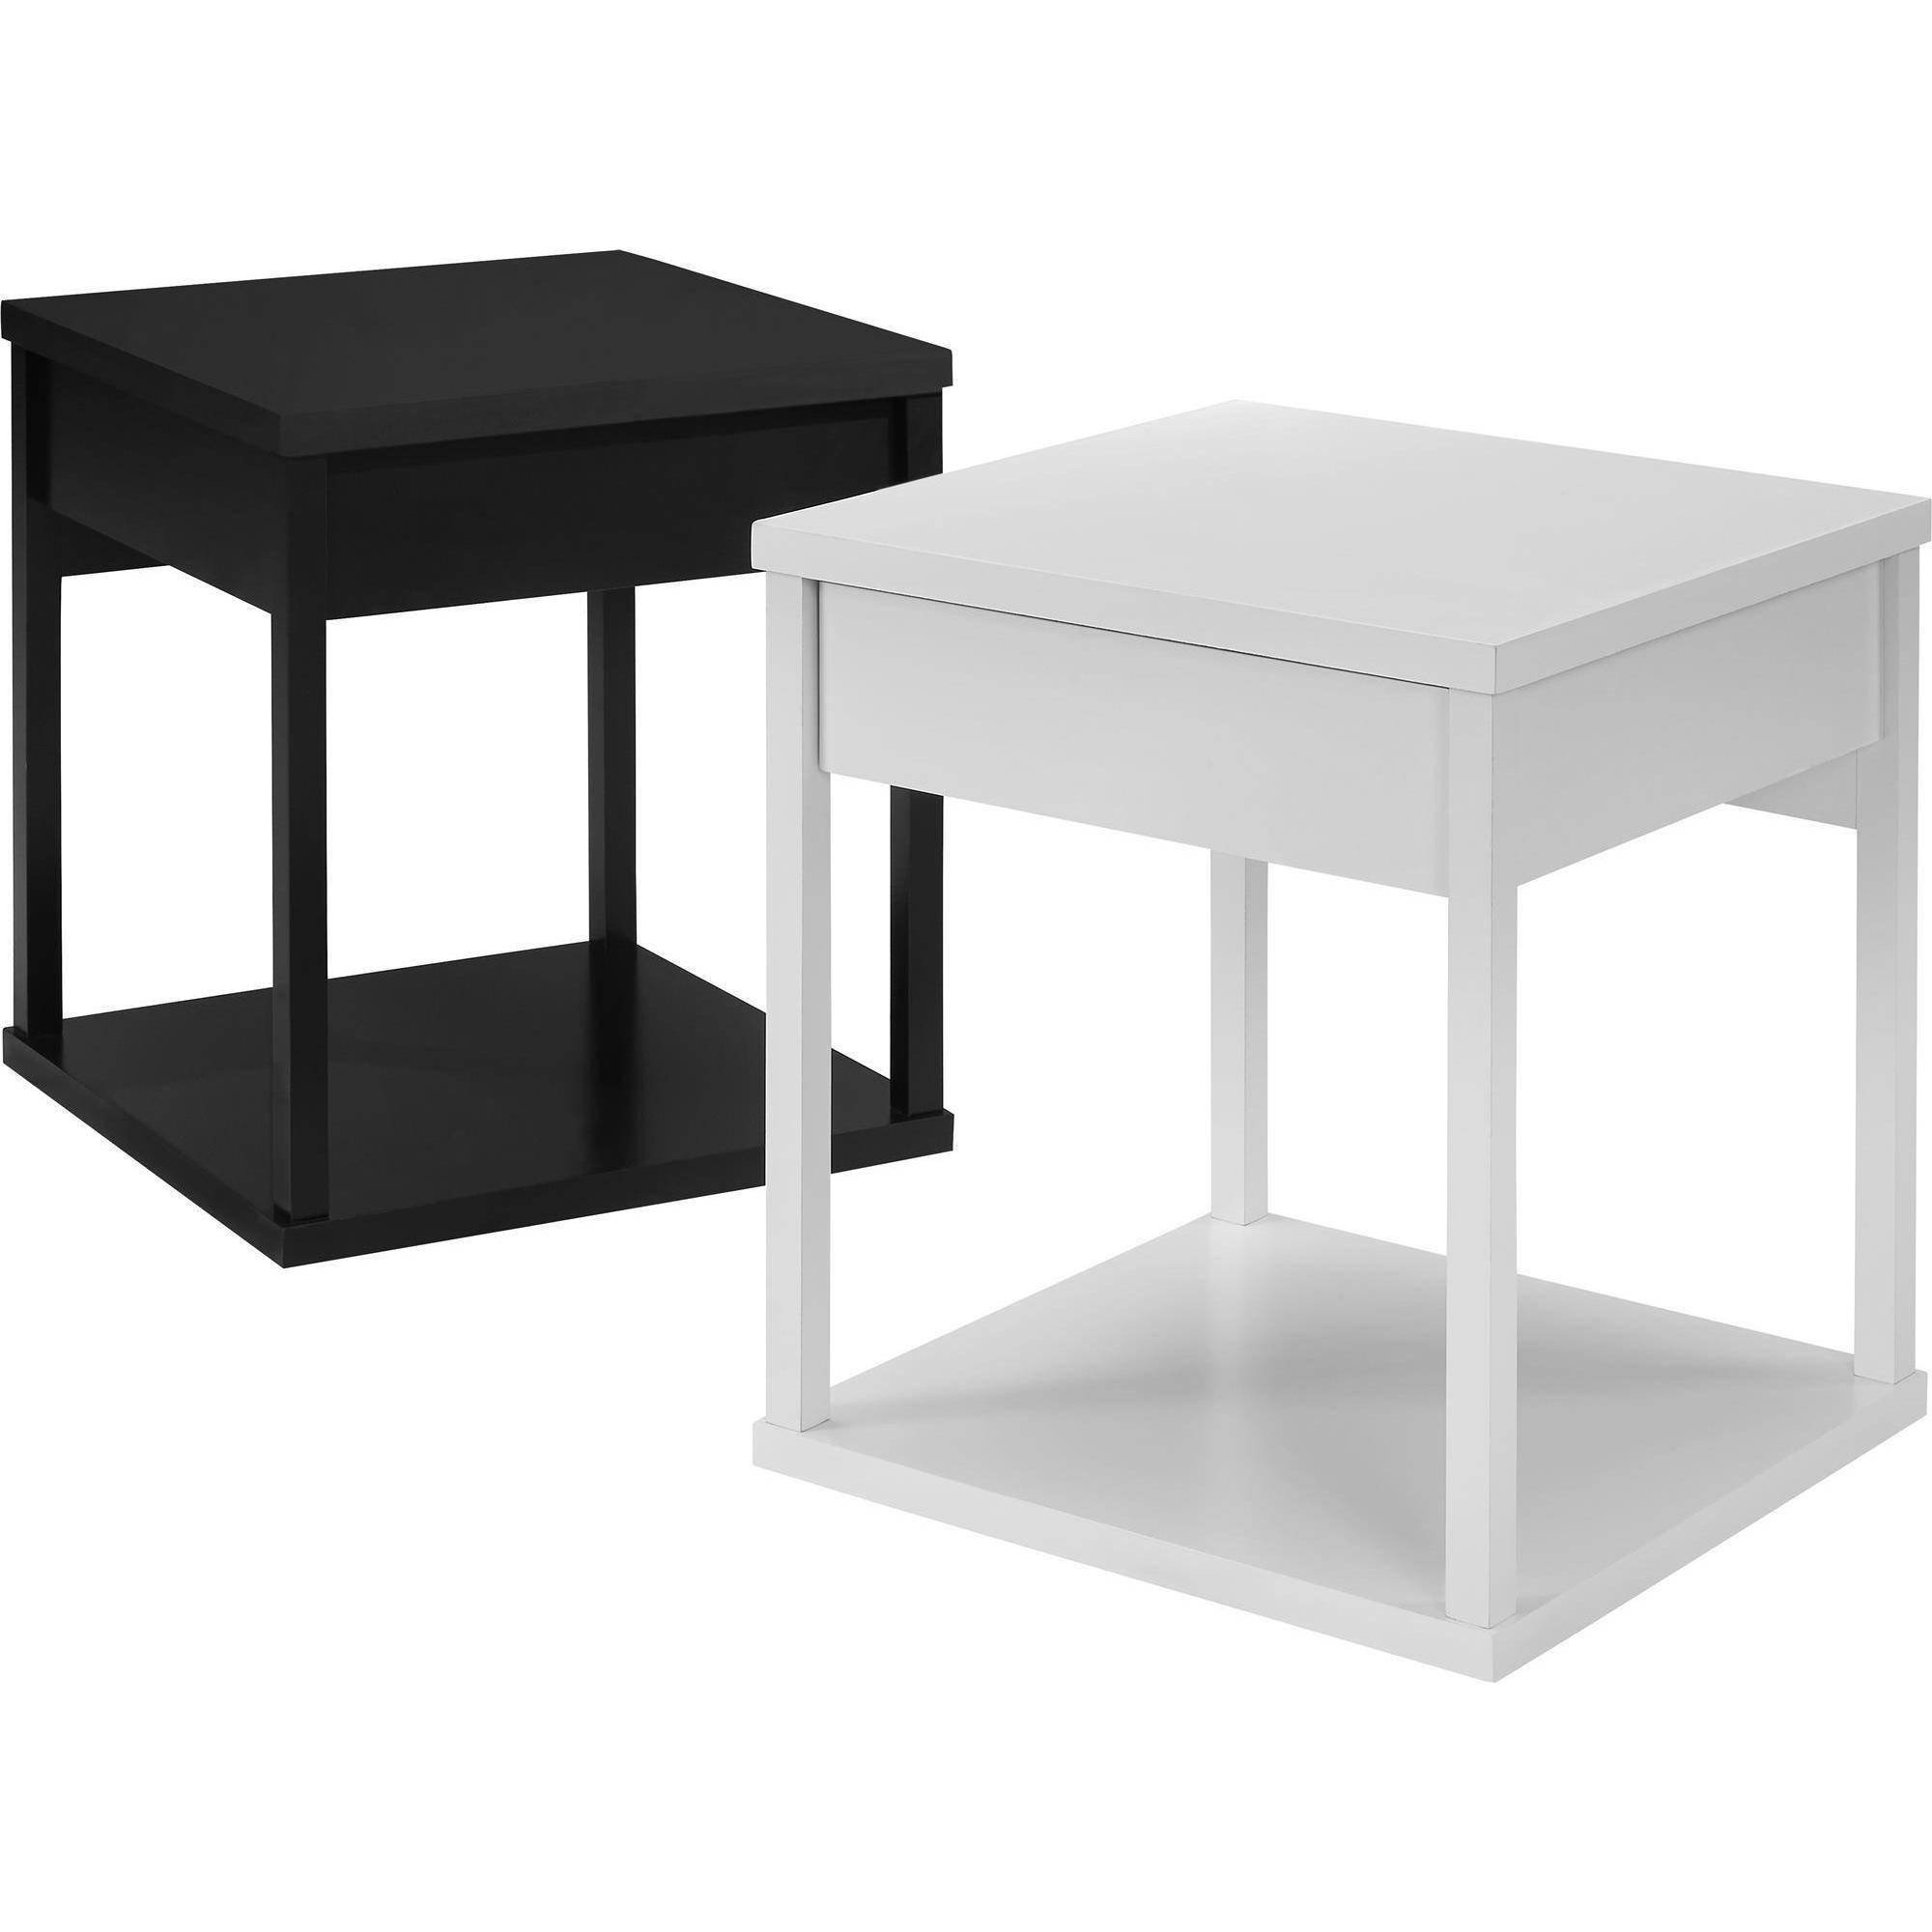 Mainstays Parsons End Table with Drawer Multiple Colors Walmart